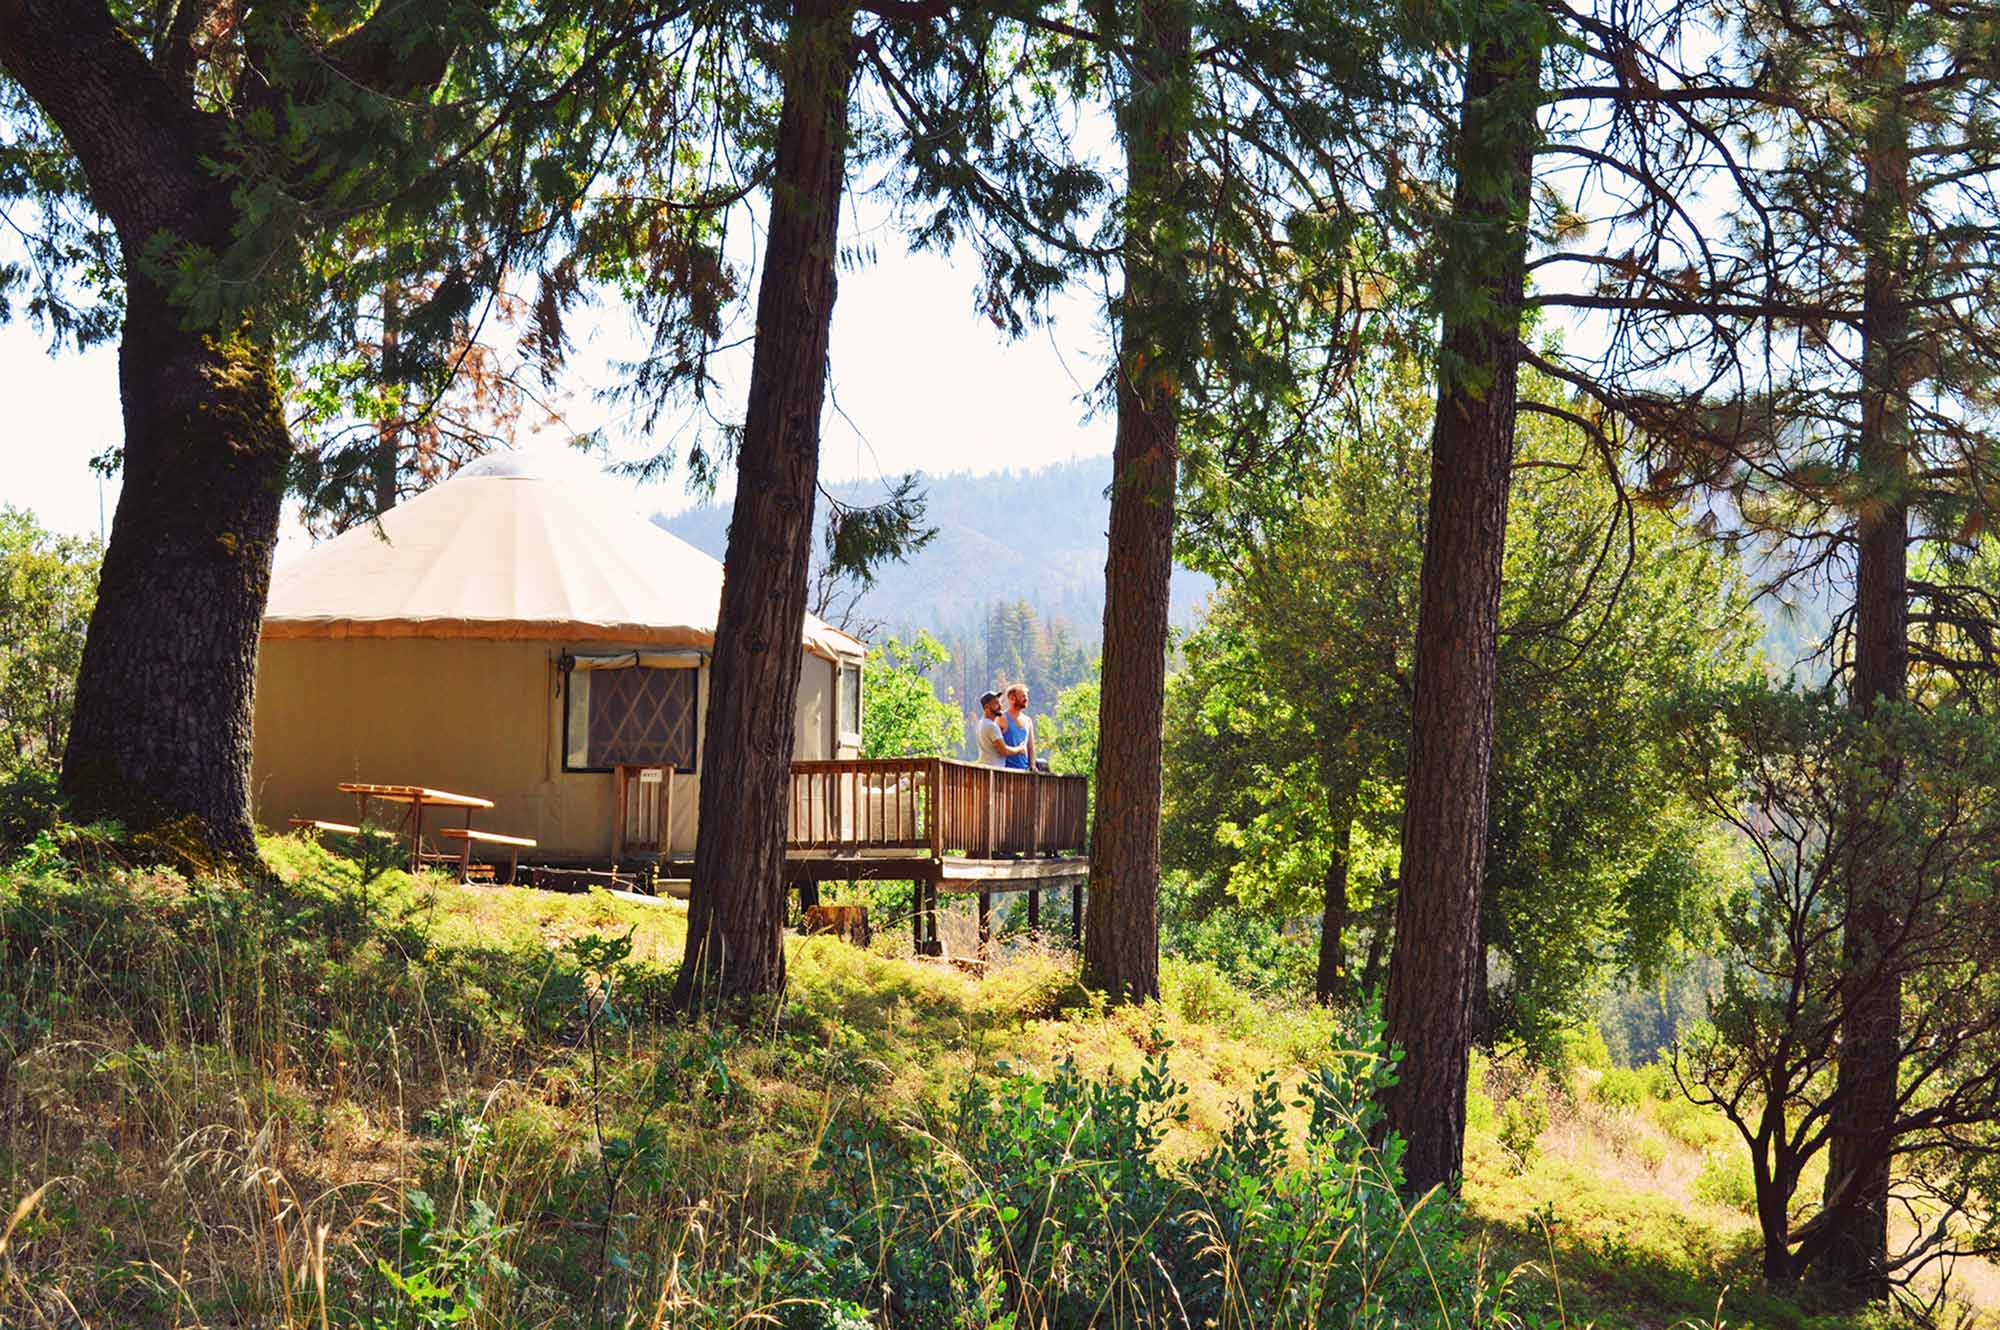 Snowflower Thousand Trails RV Resort in Emigrant Gap California is a campground or RV park with onsite or immediate access to recreational trails. The trail may be a multi-use paved path or dirt hiking trail but should be suitable to recreational movement.4/5(1).